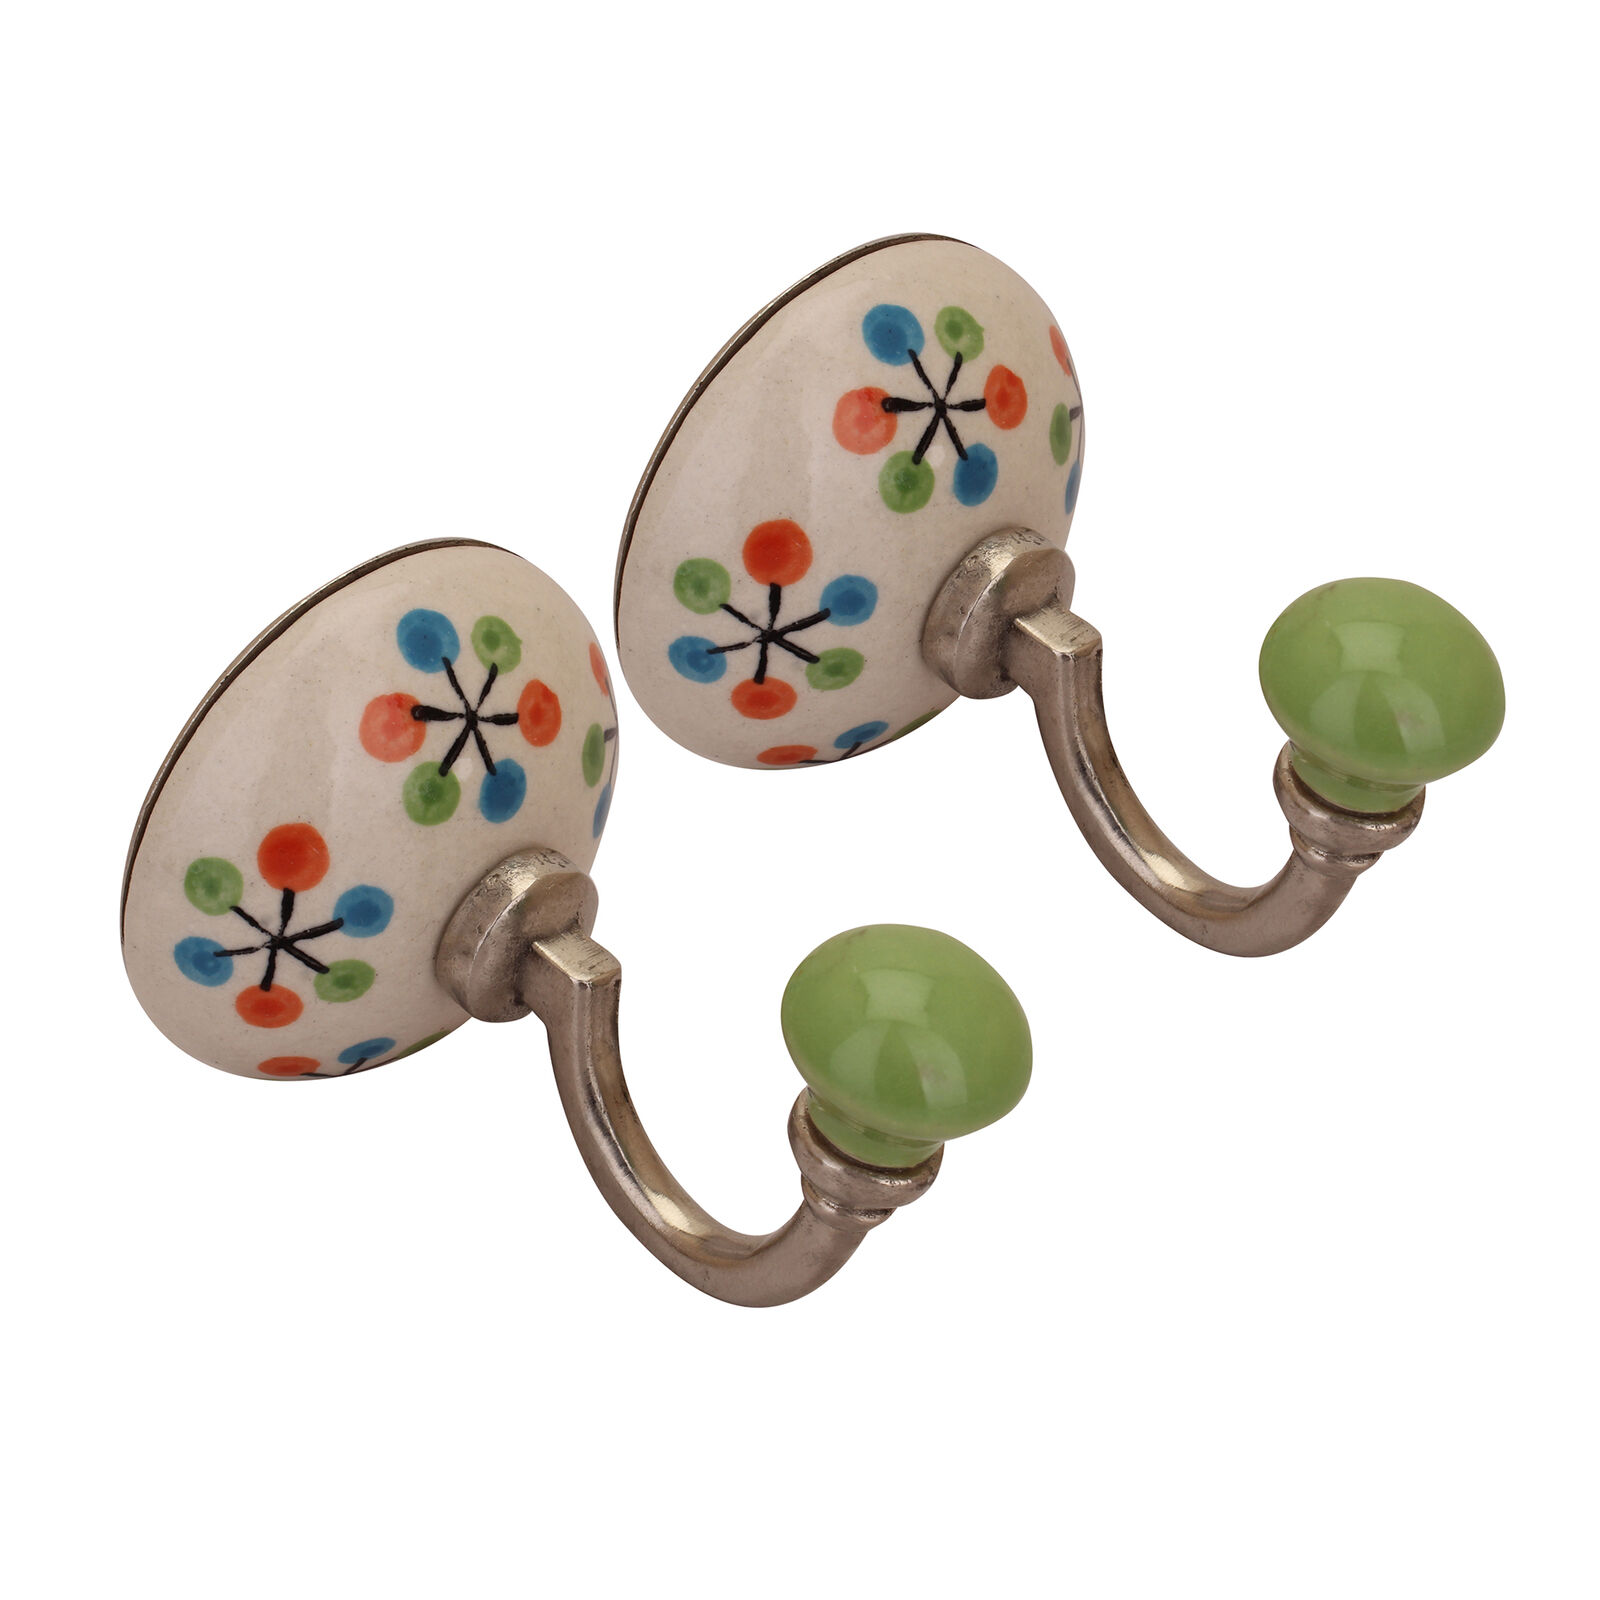 Indian Beautiful Wall Hooks Handmade Cabinet Ceramic Metal Hanging for Towels